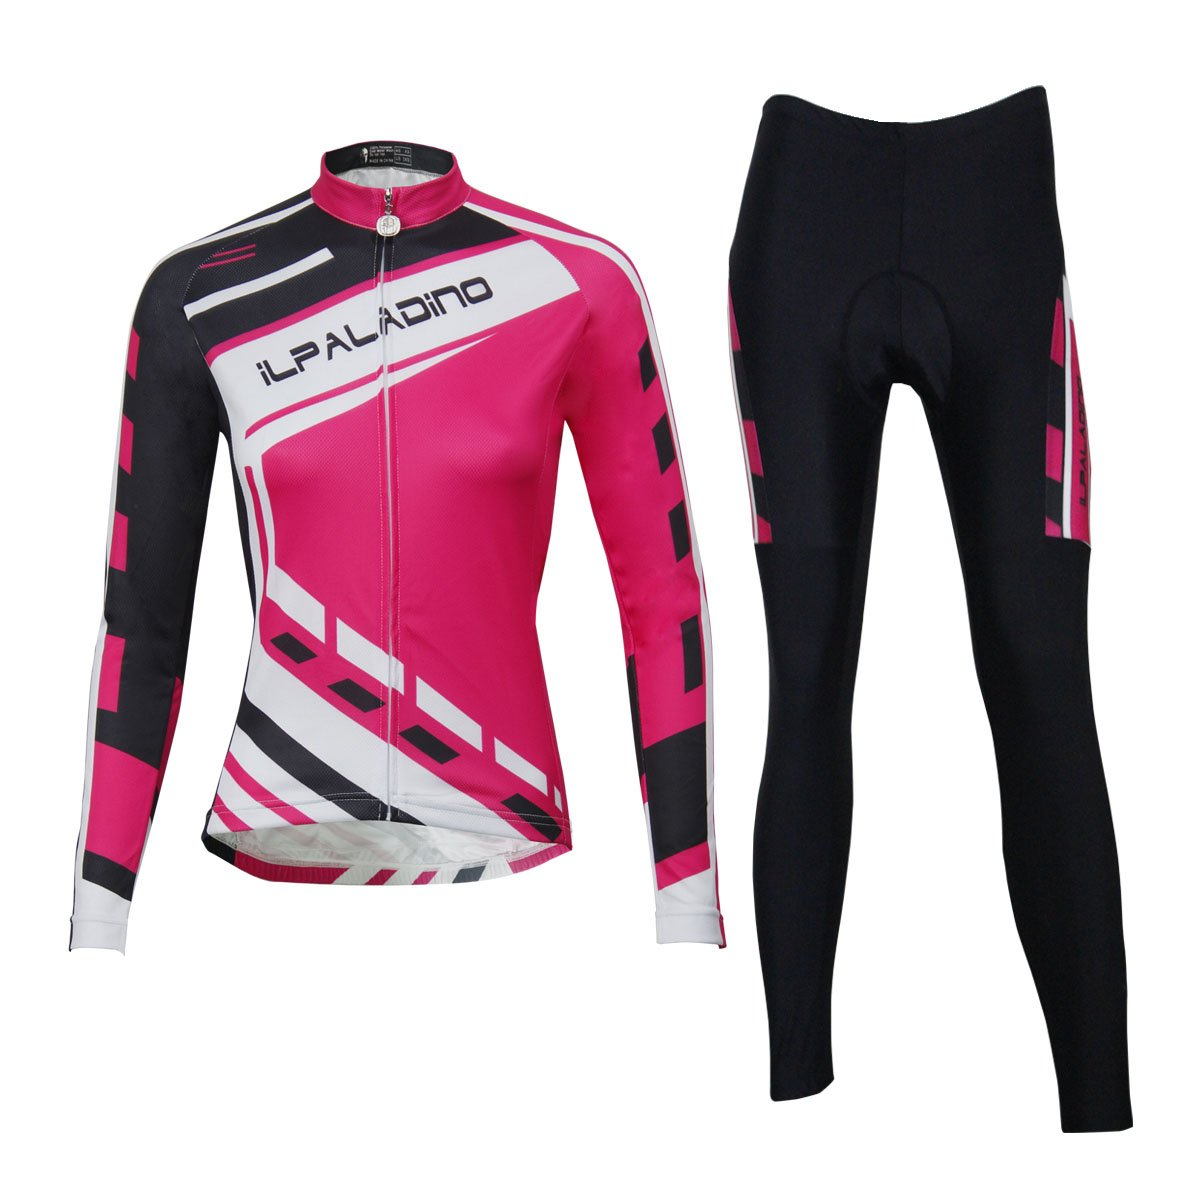 Amazon.com  ILPALADINO Women s Cycling Jersey Clothing Set Long Sleeve  Quick Dry Breathable  Clothing 8b15e1dc7